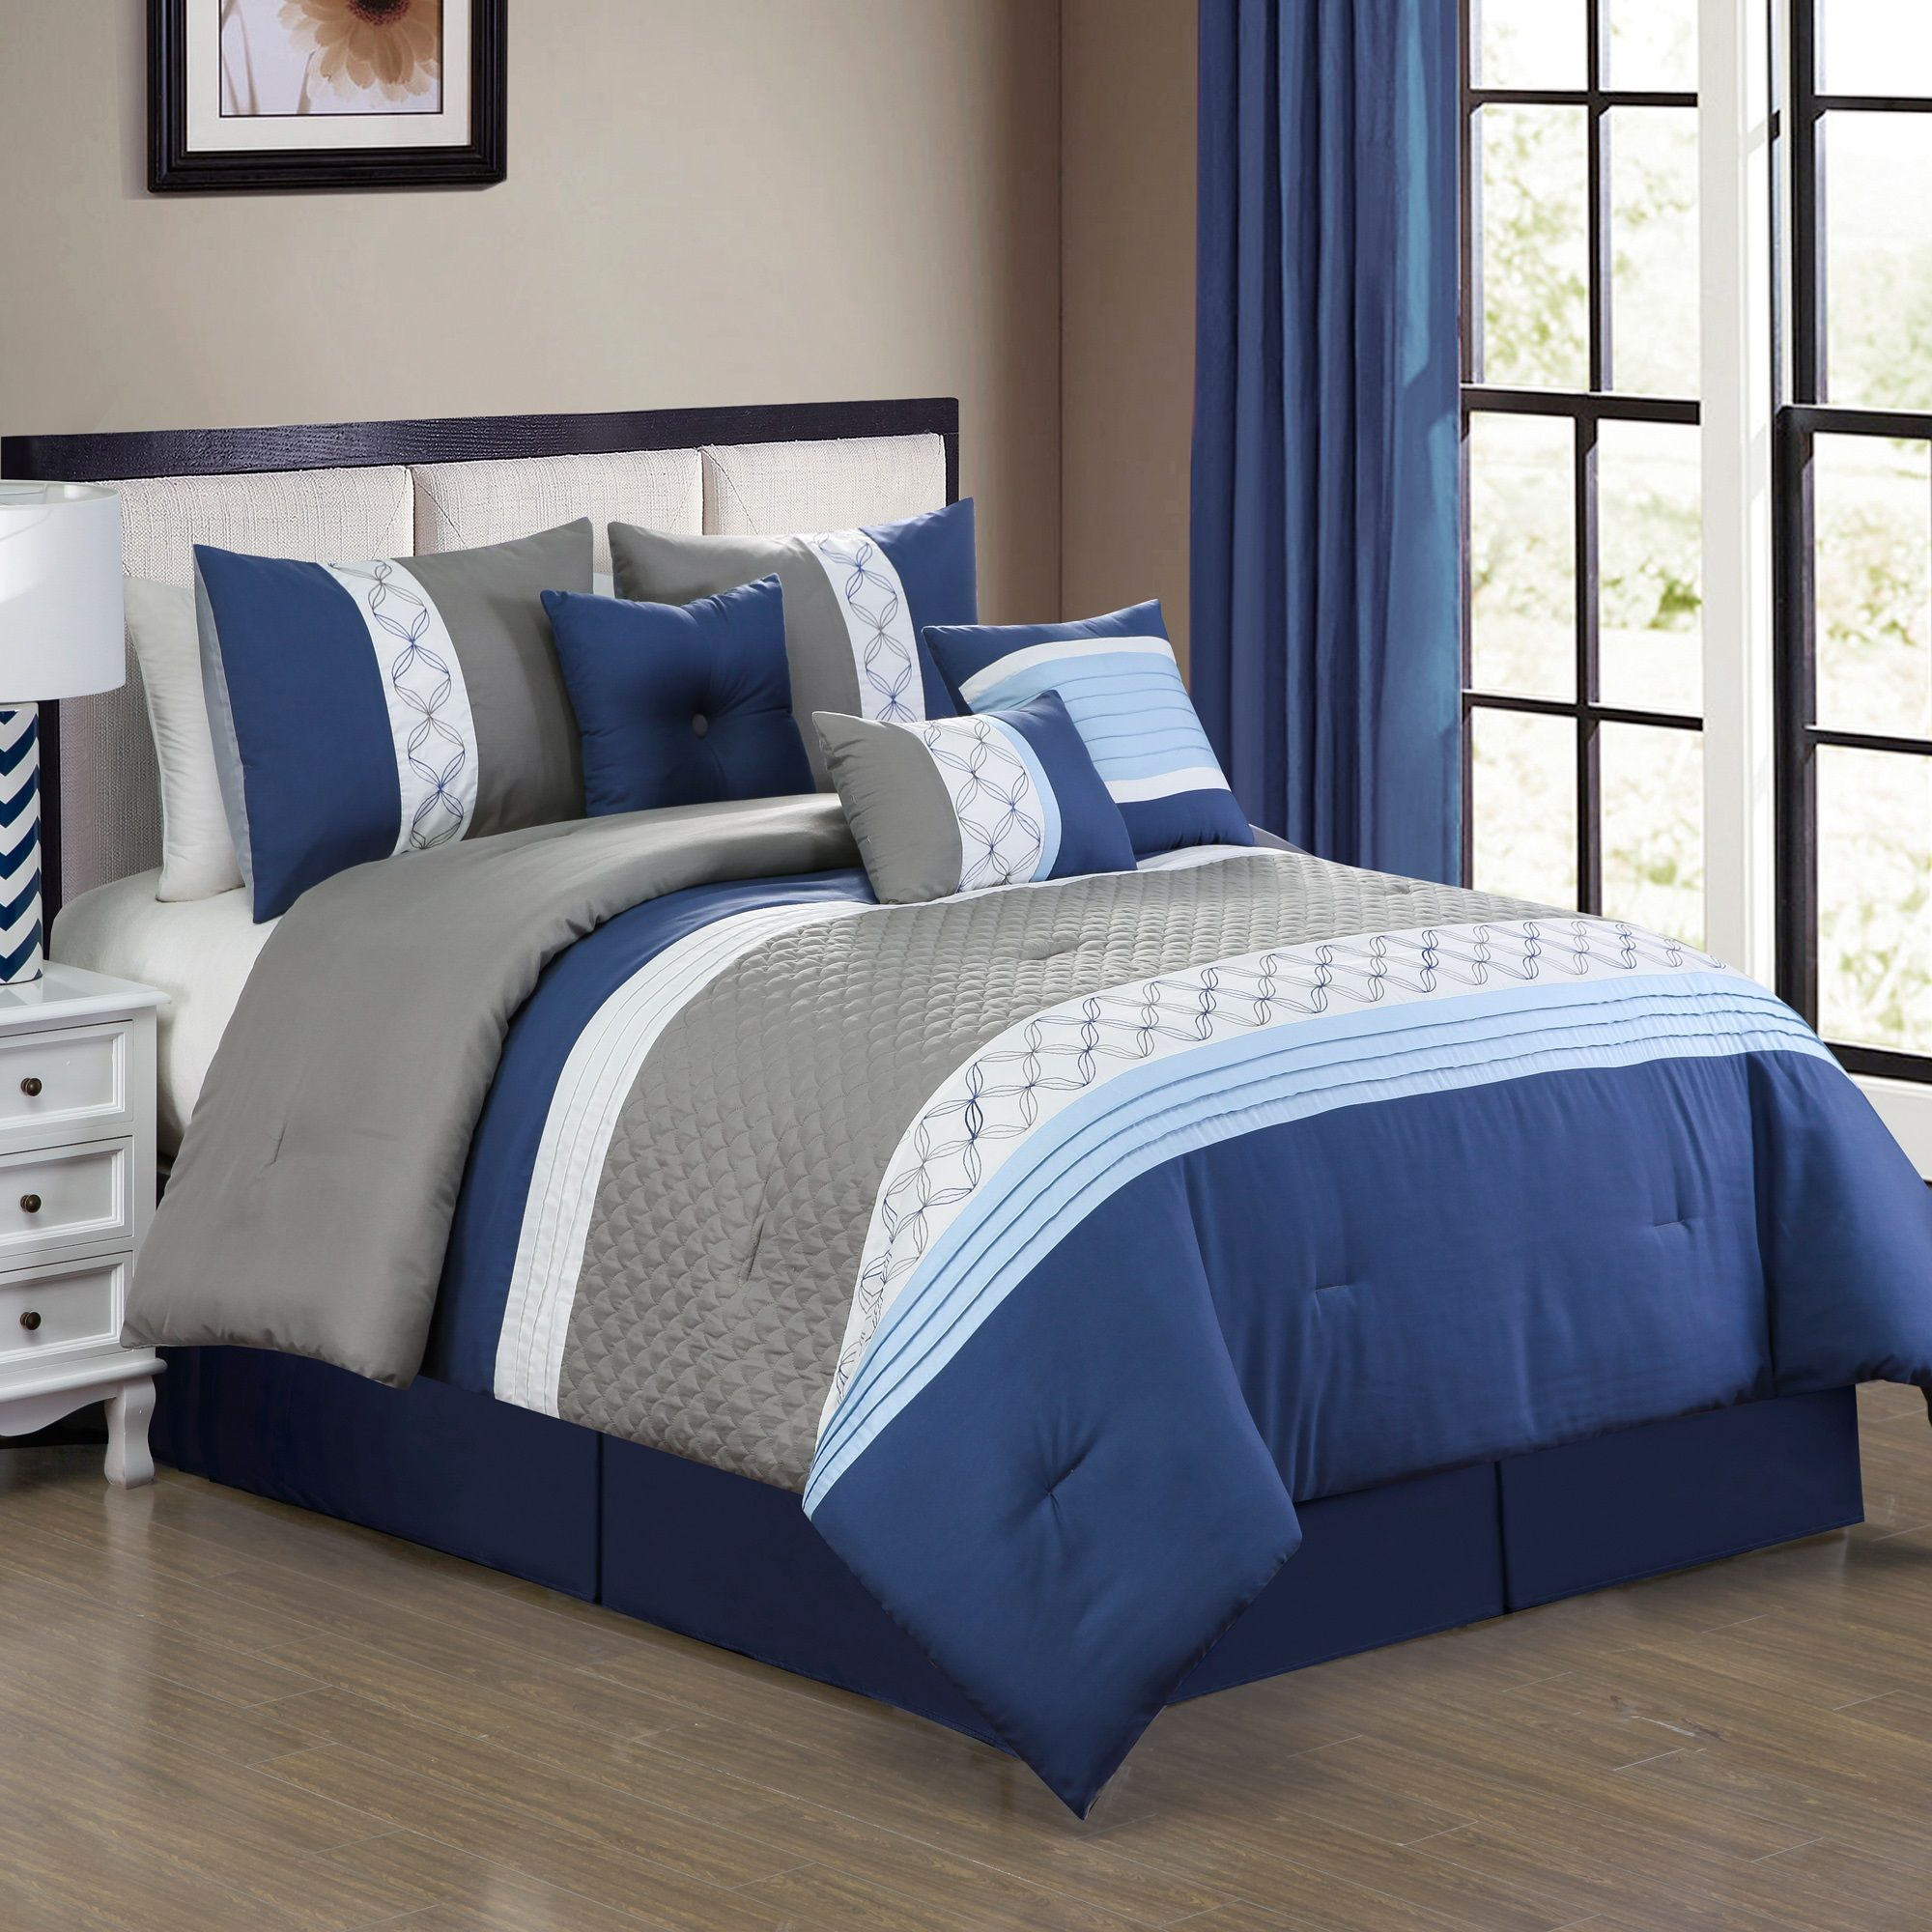 Home With Images Comforter Sets